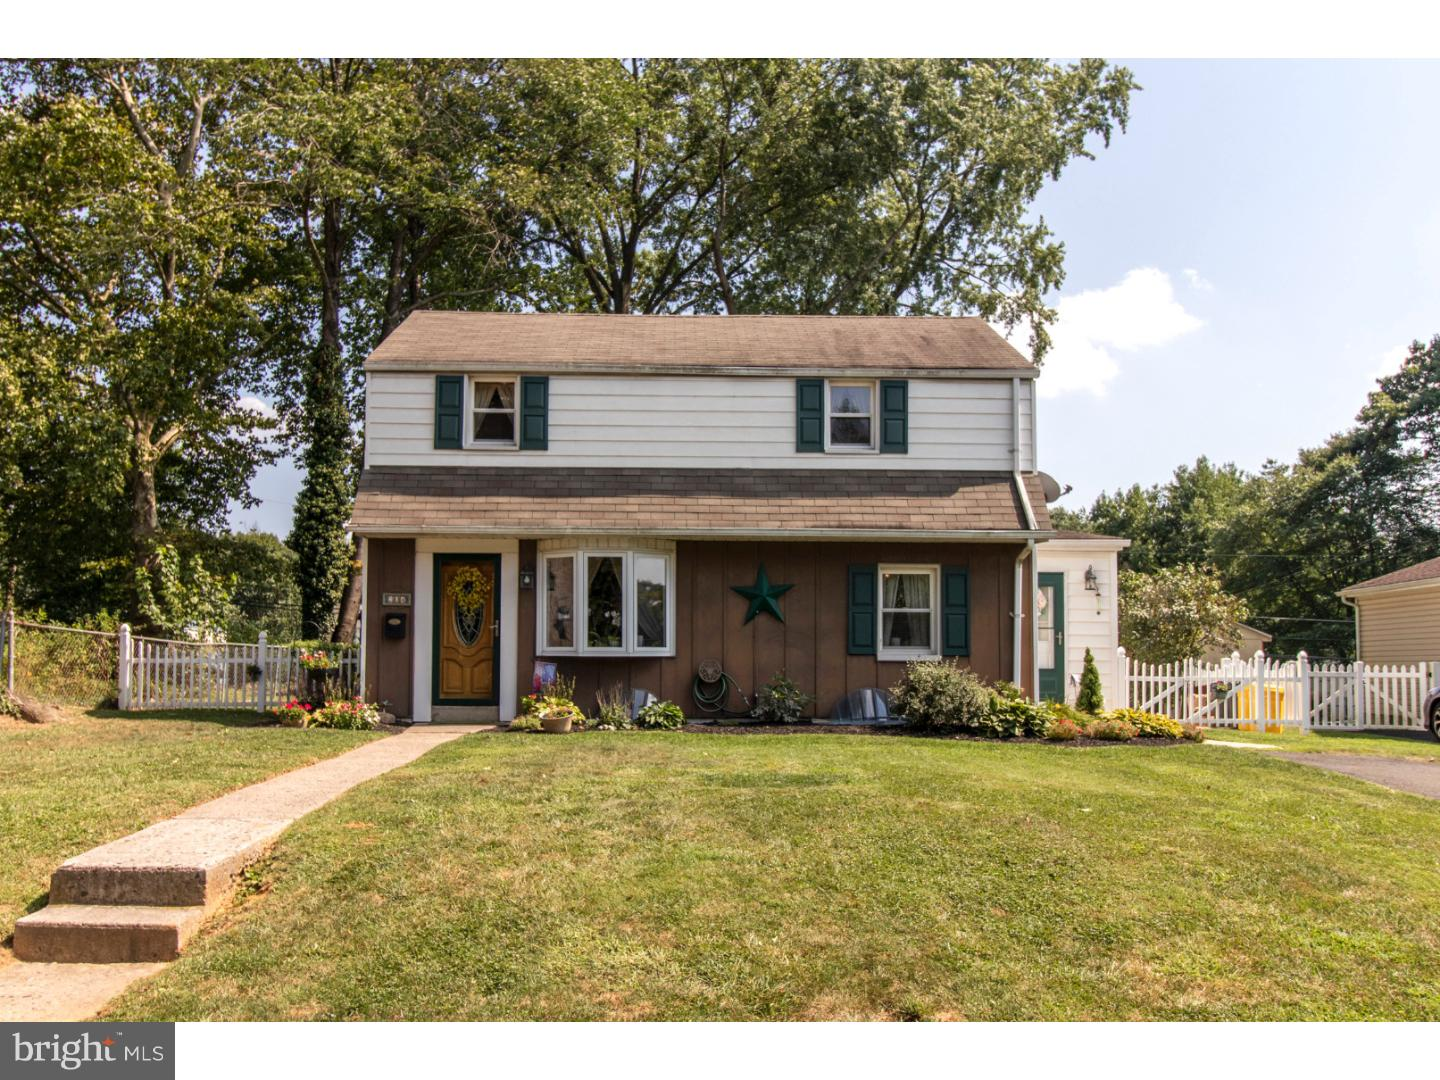 204 GARTH ROAD, ORELAND, PA 19075